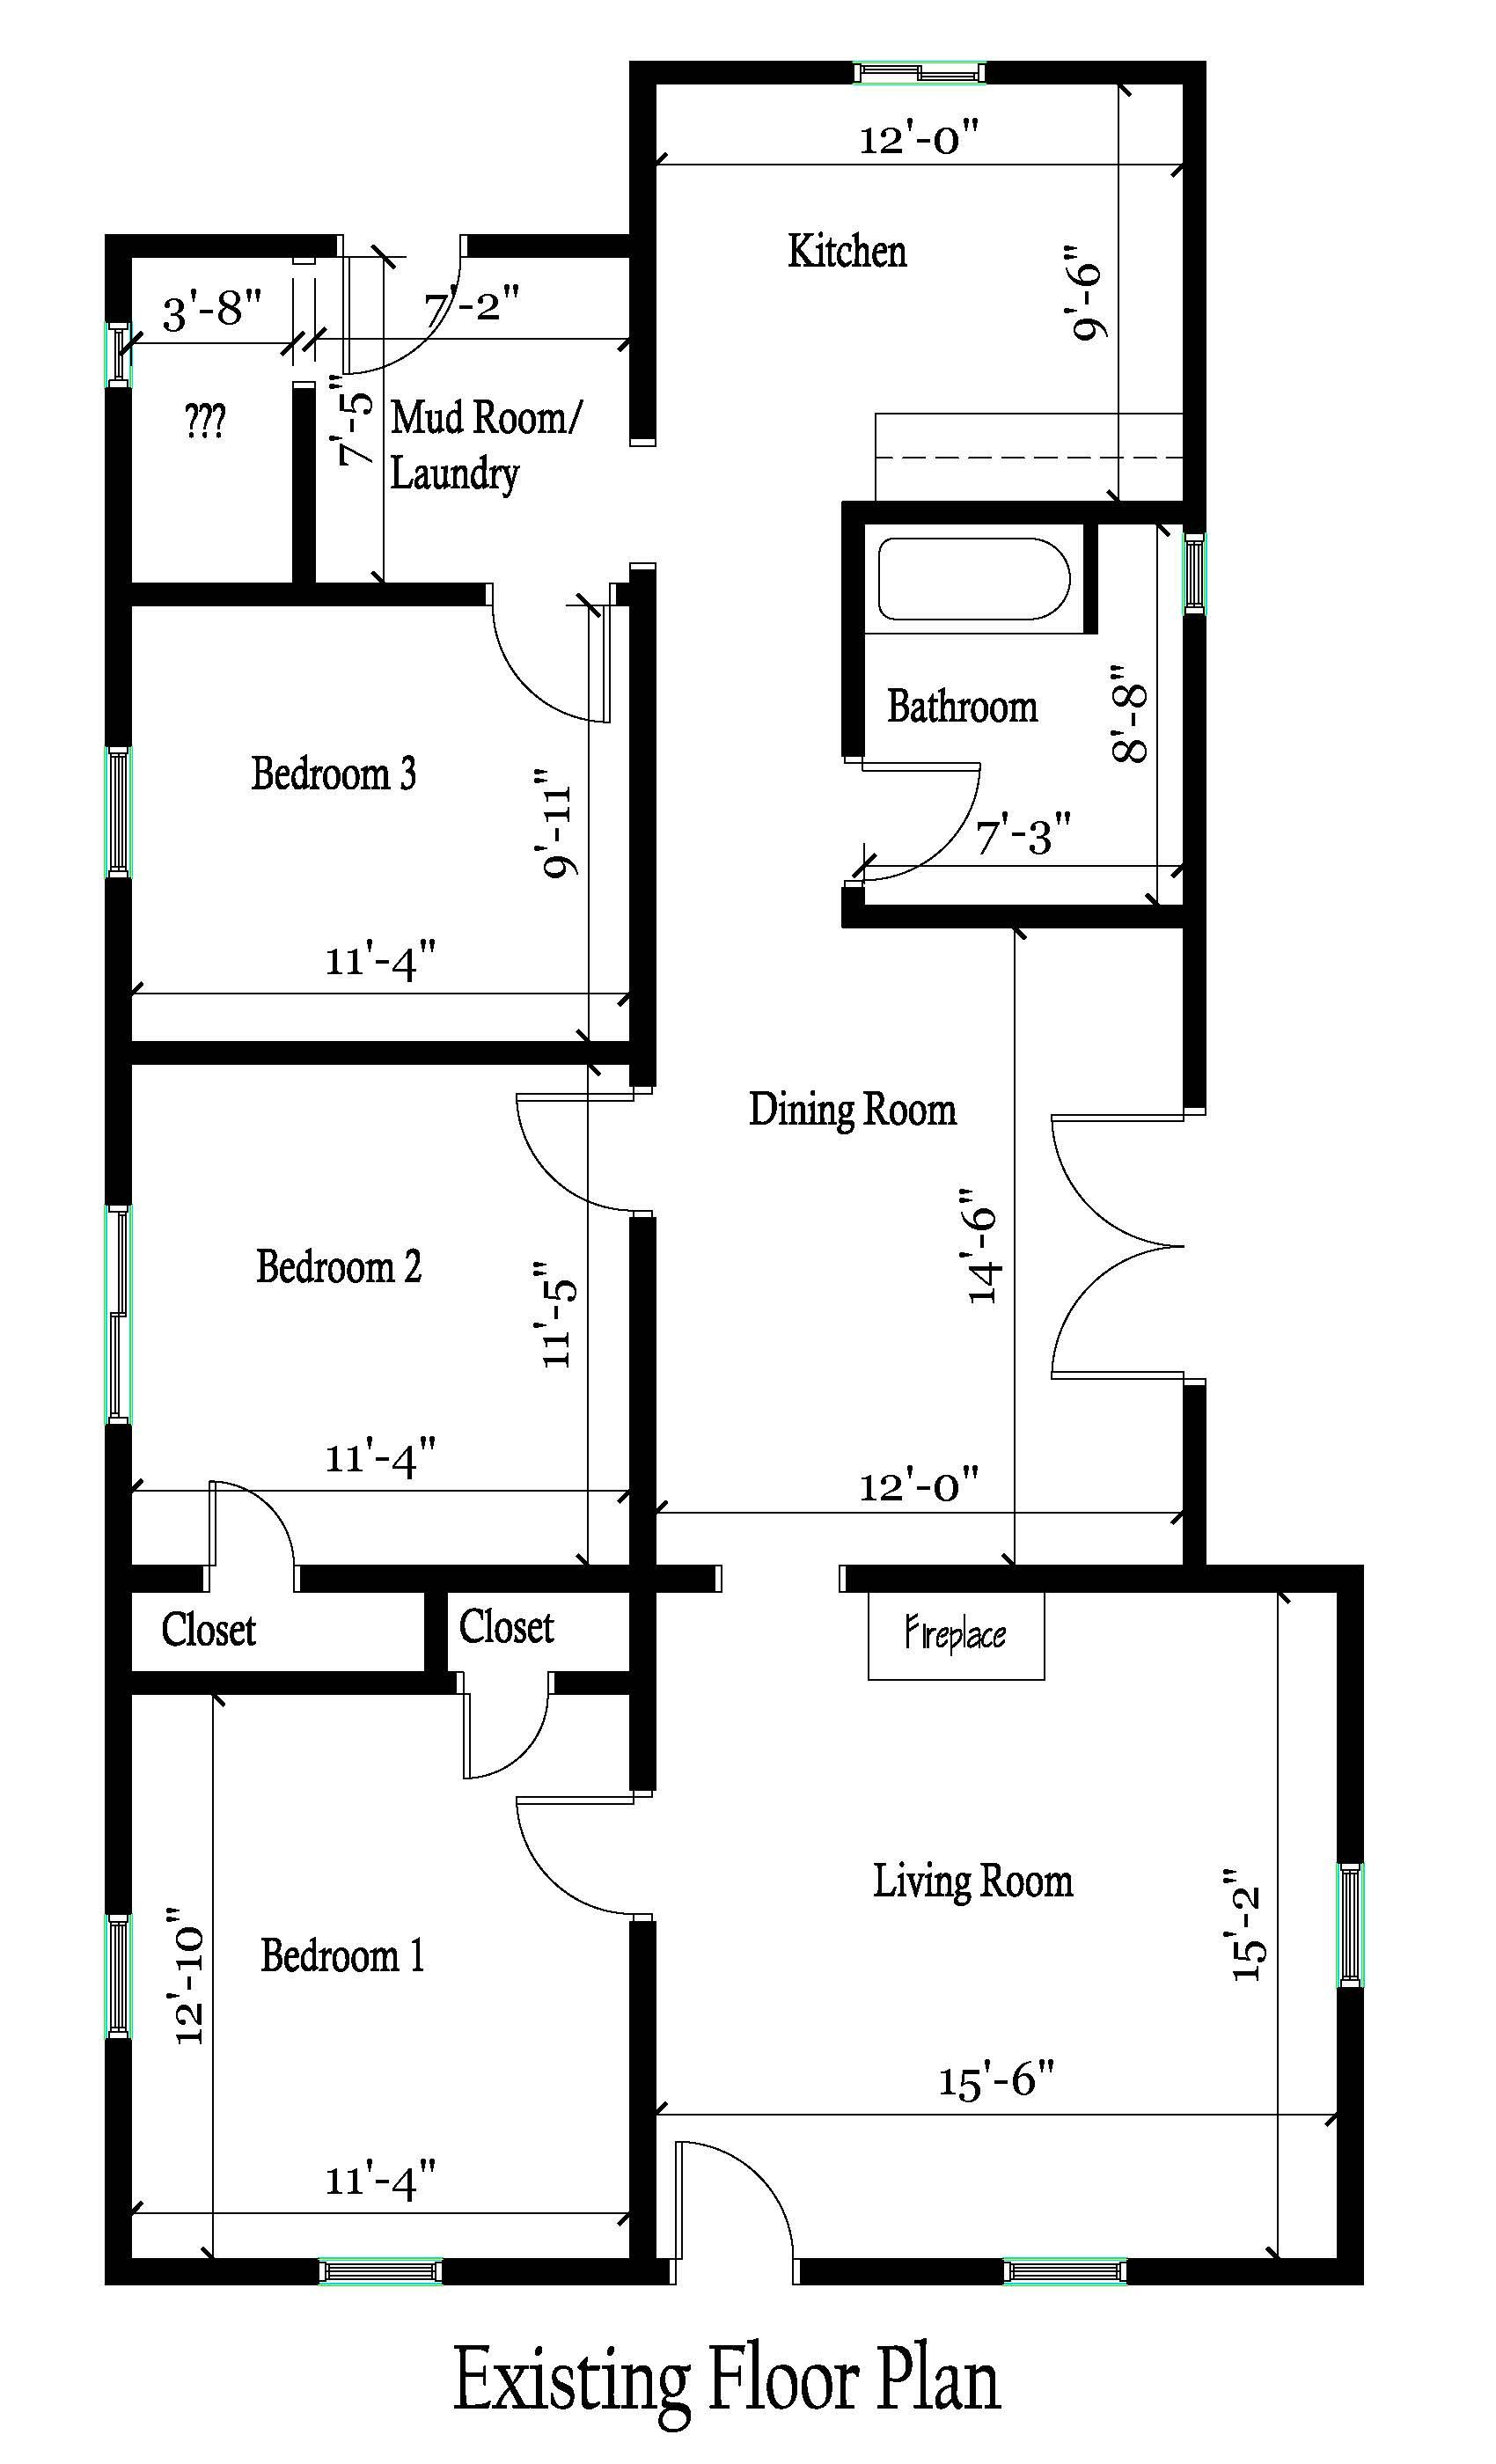 Heartland House Existing Floor Plan